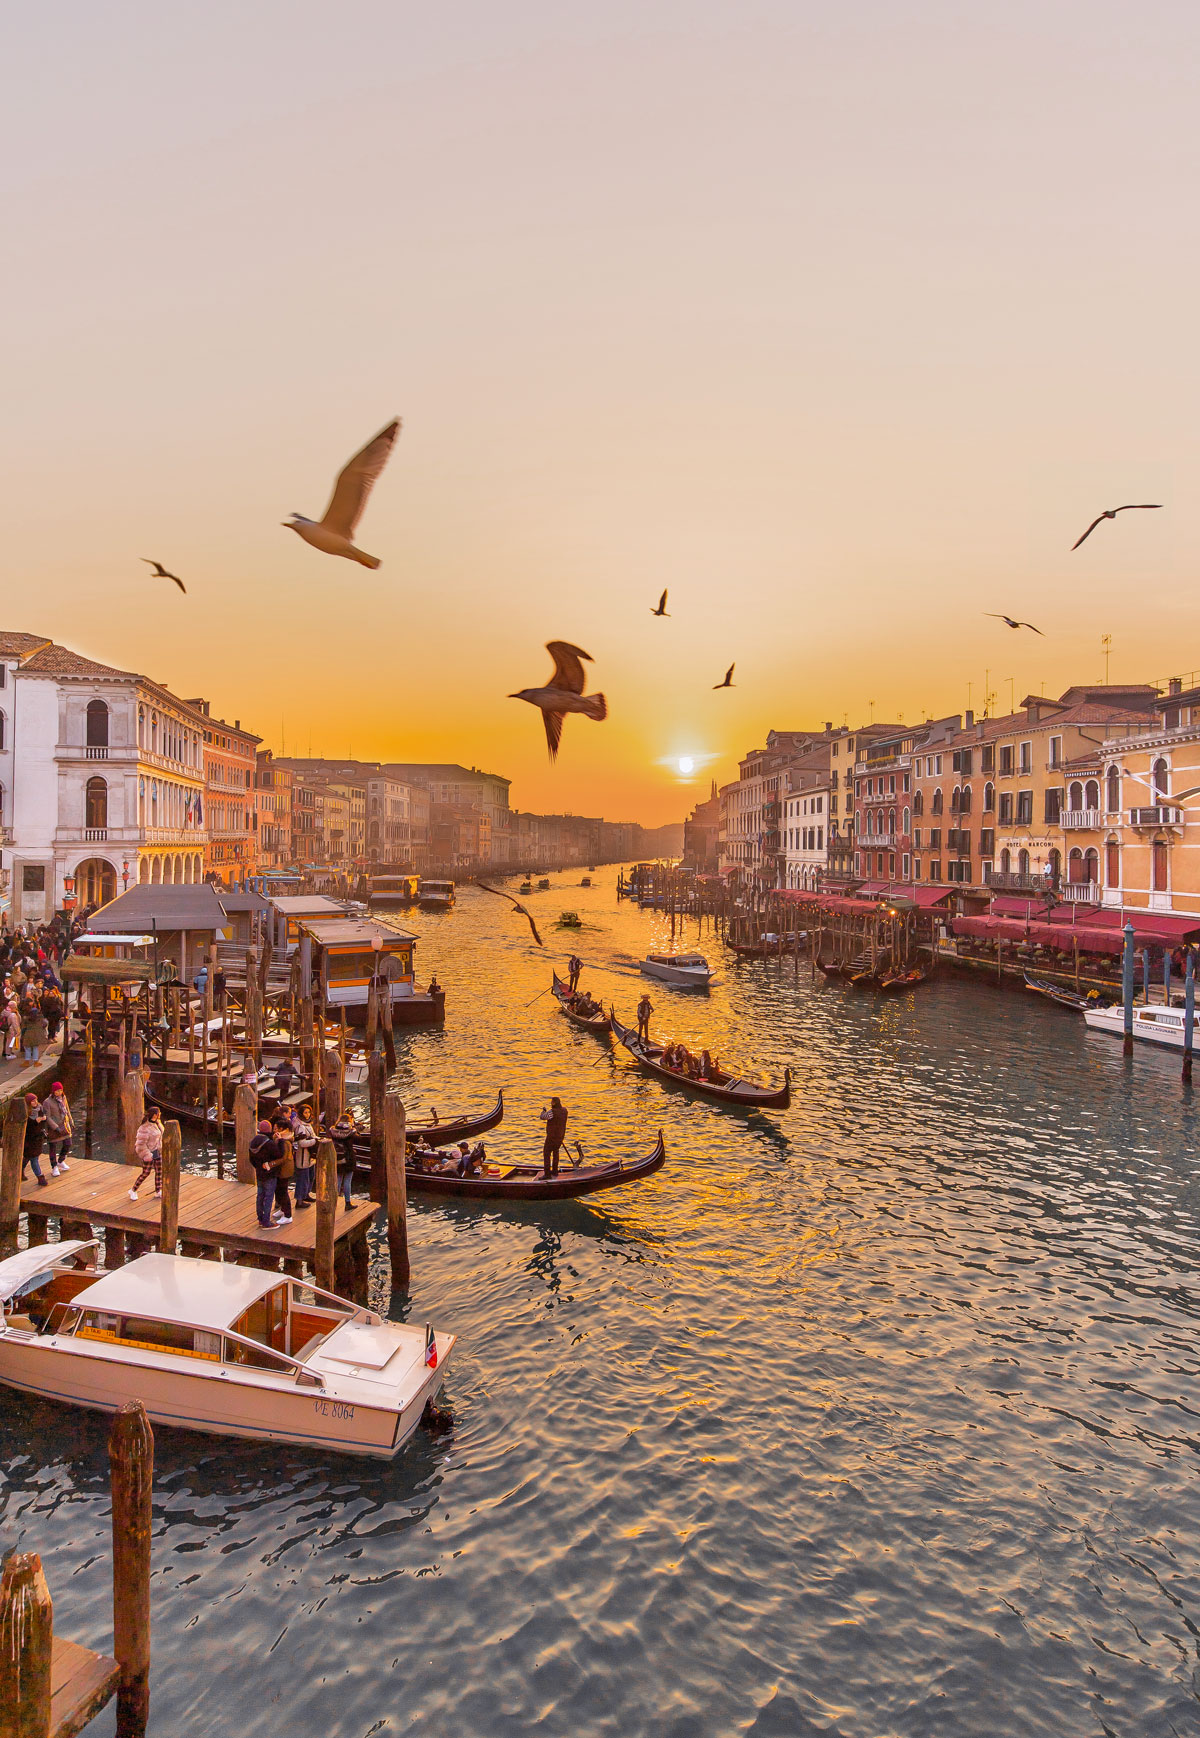 top things to do in Venice - Venice Instagram spots – Venice bucket list - kelseyinlondon - kelsey heinrichs - venice gondola ride - venice grand canal - venice instagram spots